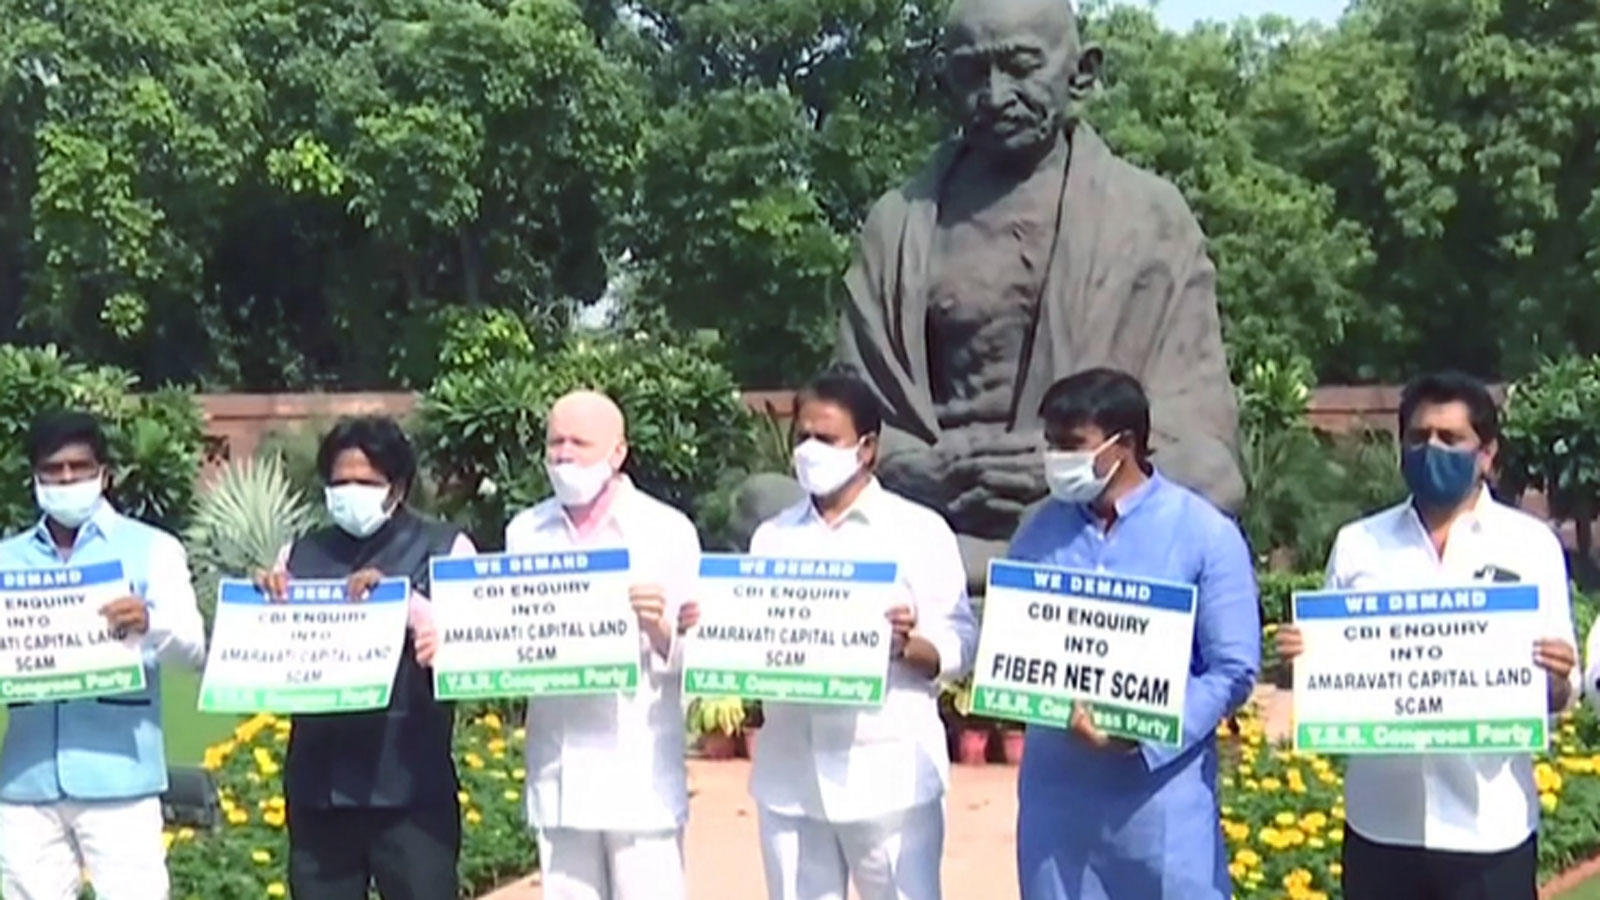 amaravati-capital-land-scam-ysrcp-mps-continue-protest-in-parliament-premises-for-2nd-day